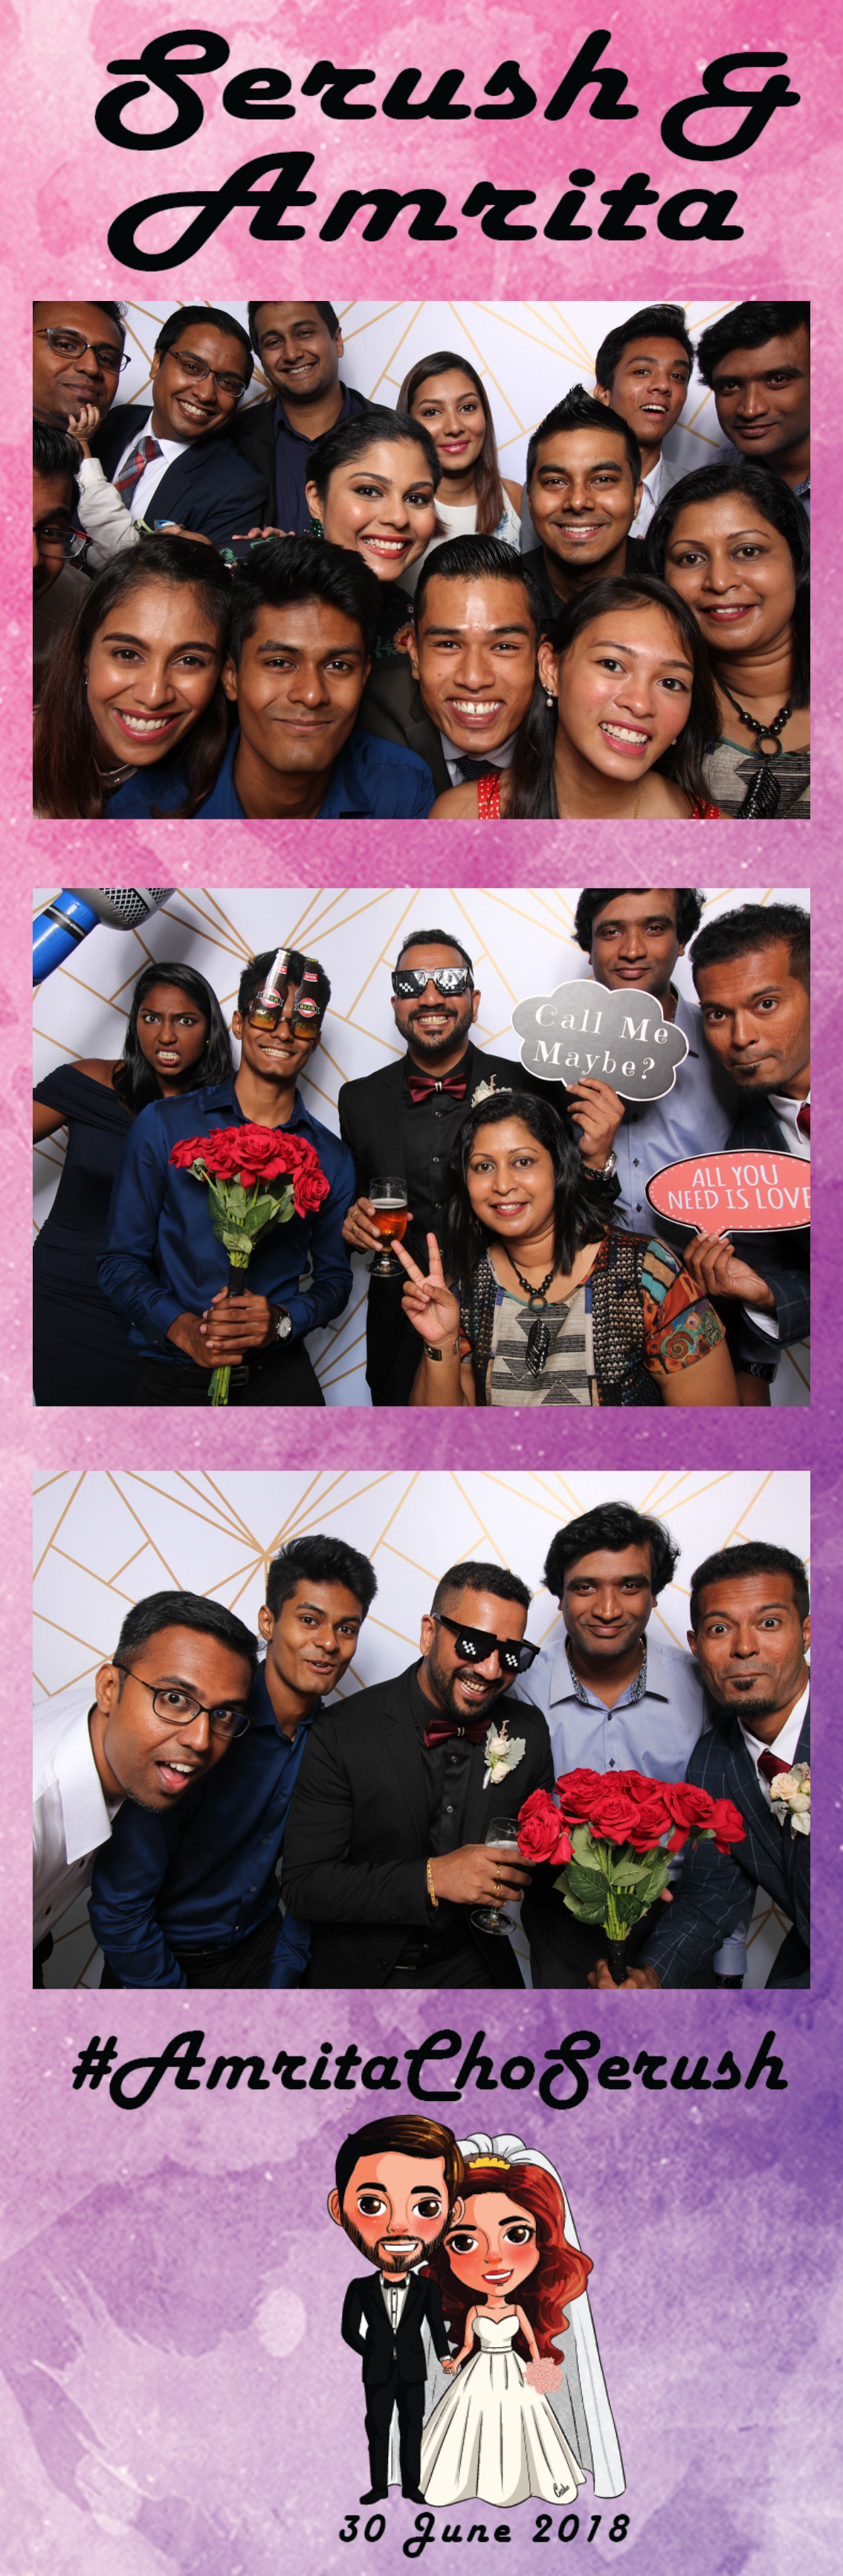 whoots photo booth singapore wedding (28